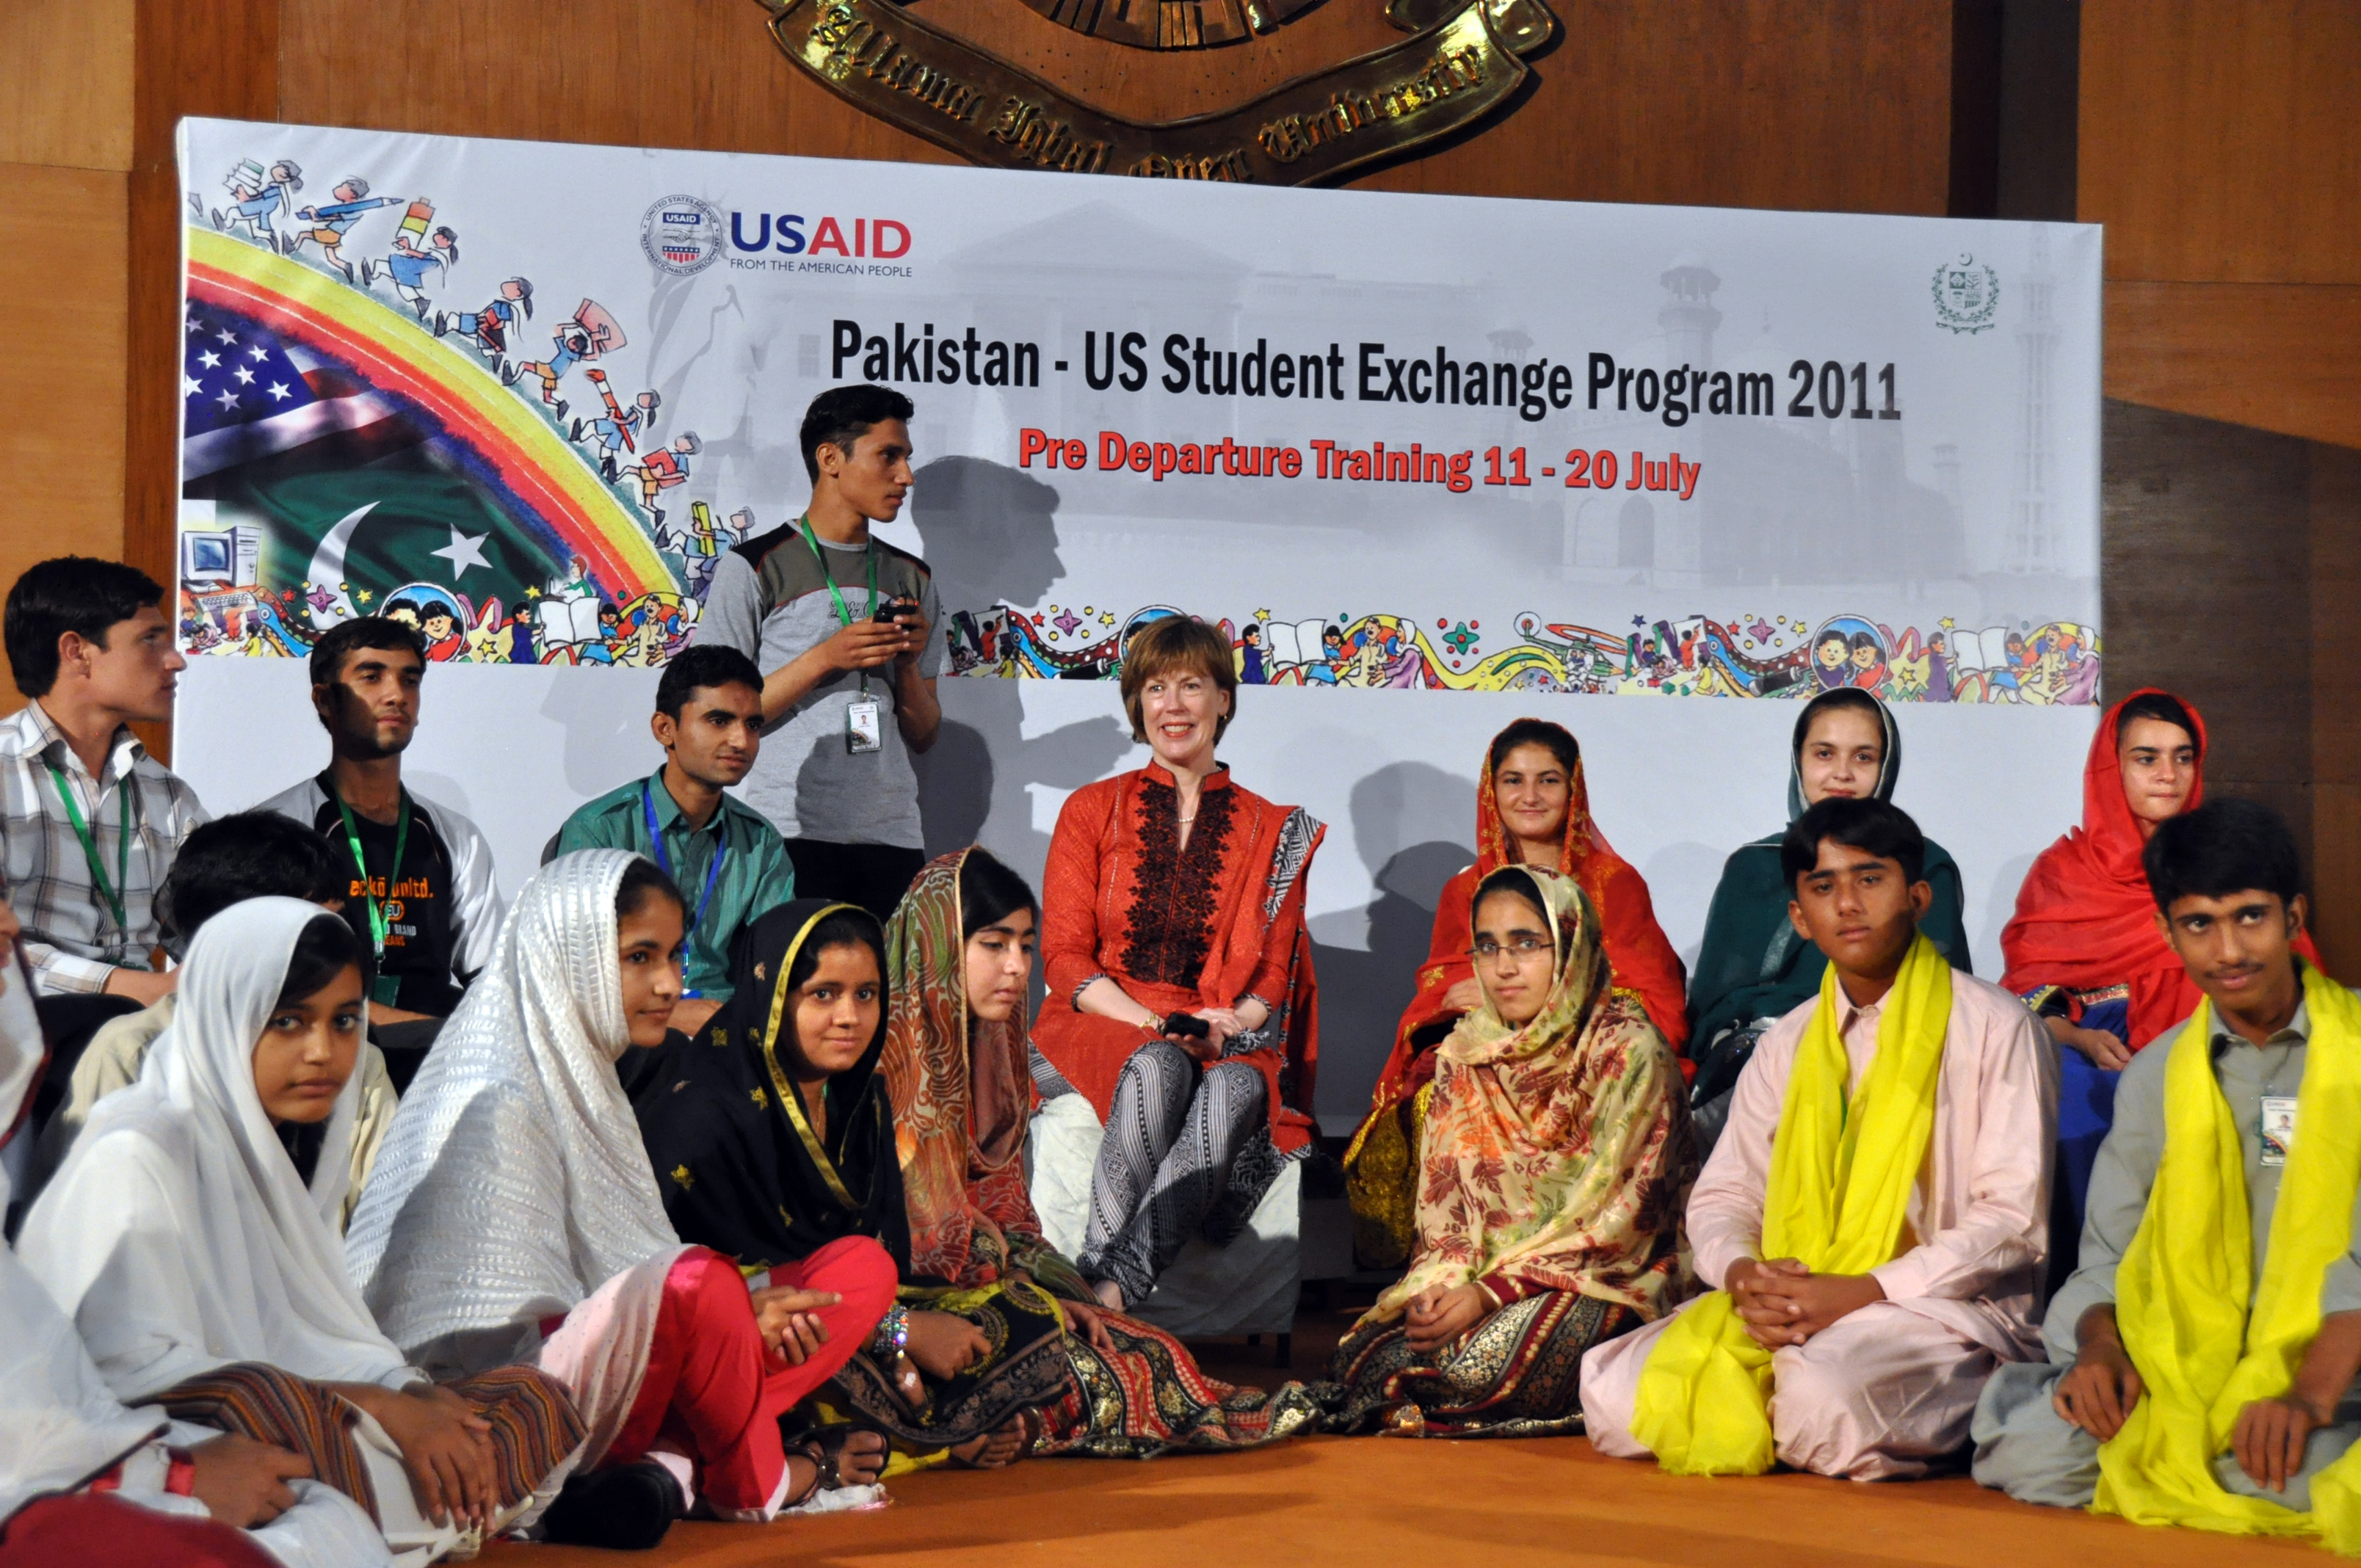 Student exchange program - Wikipedia